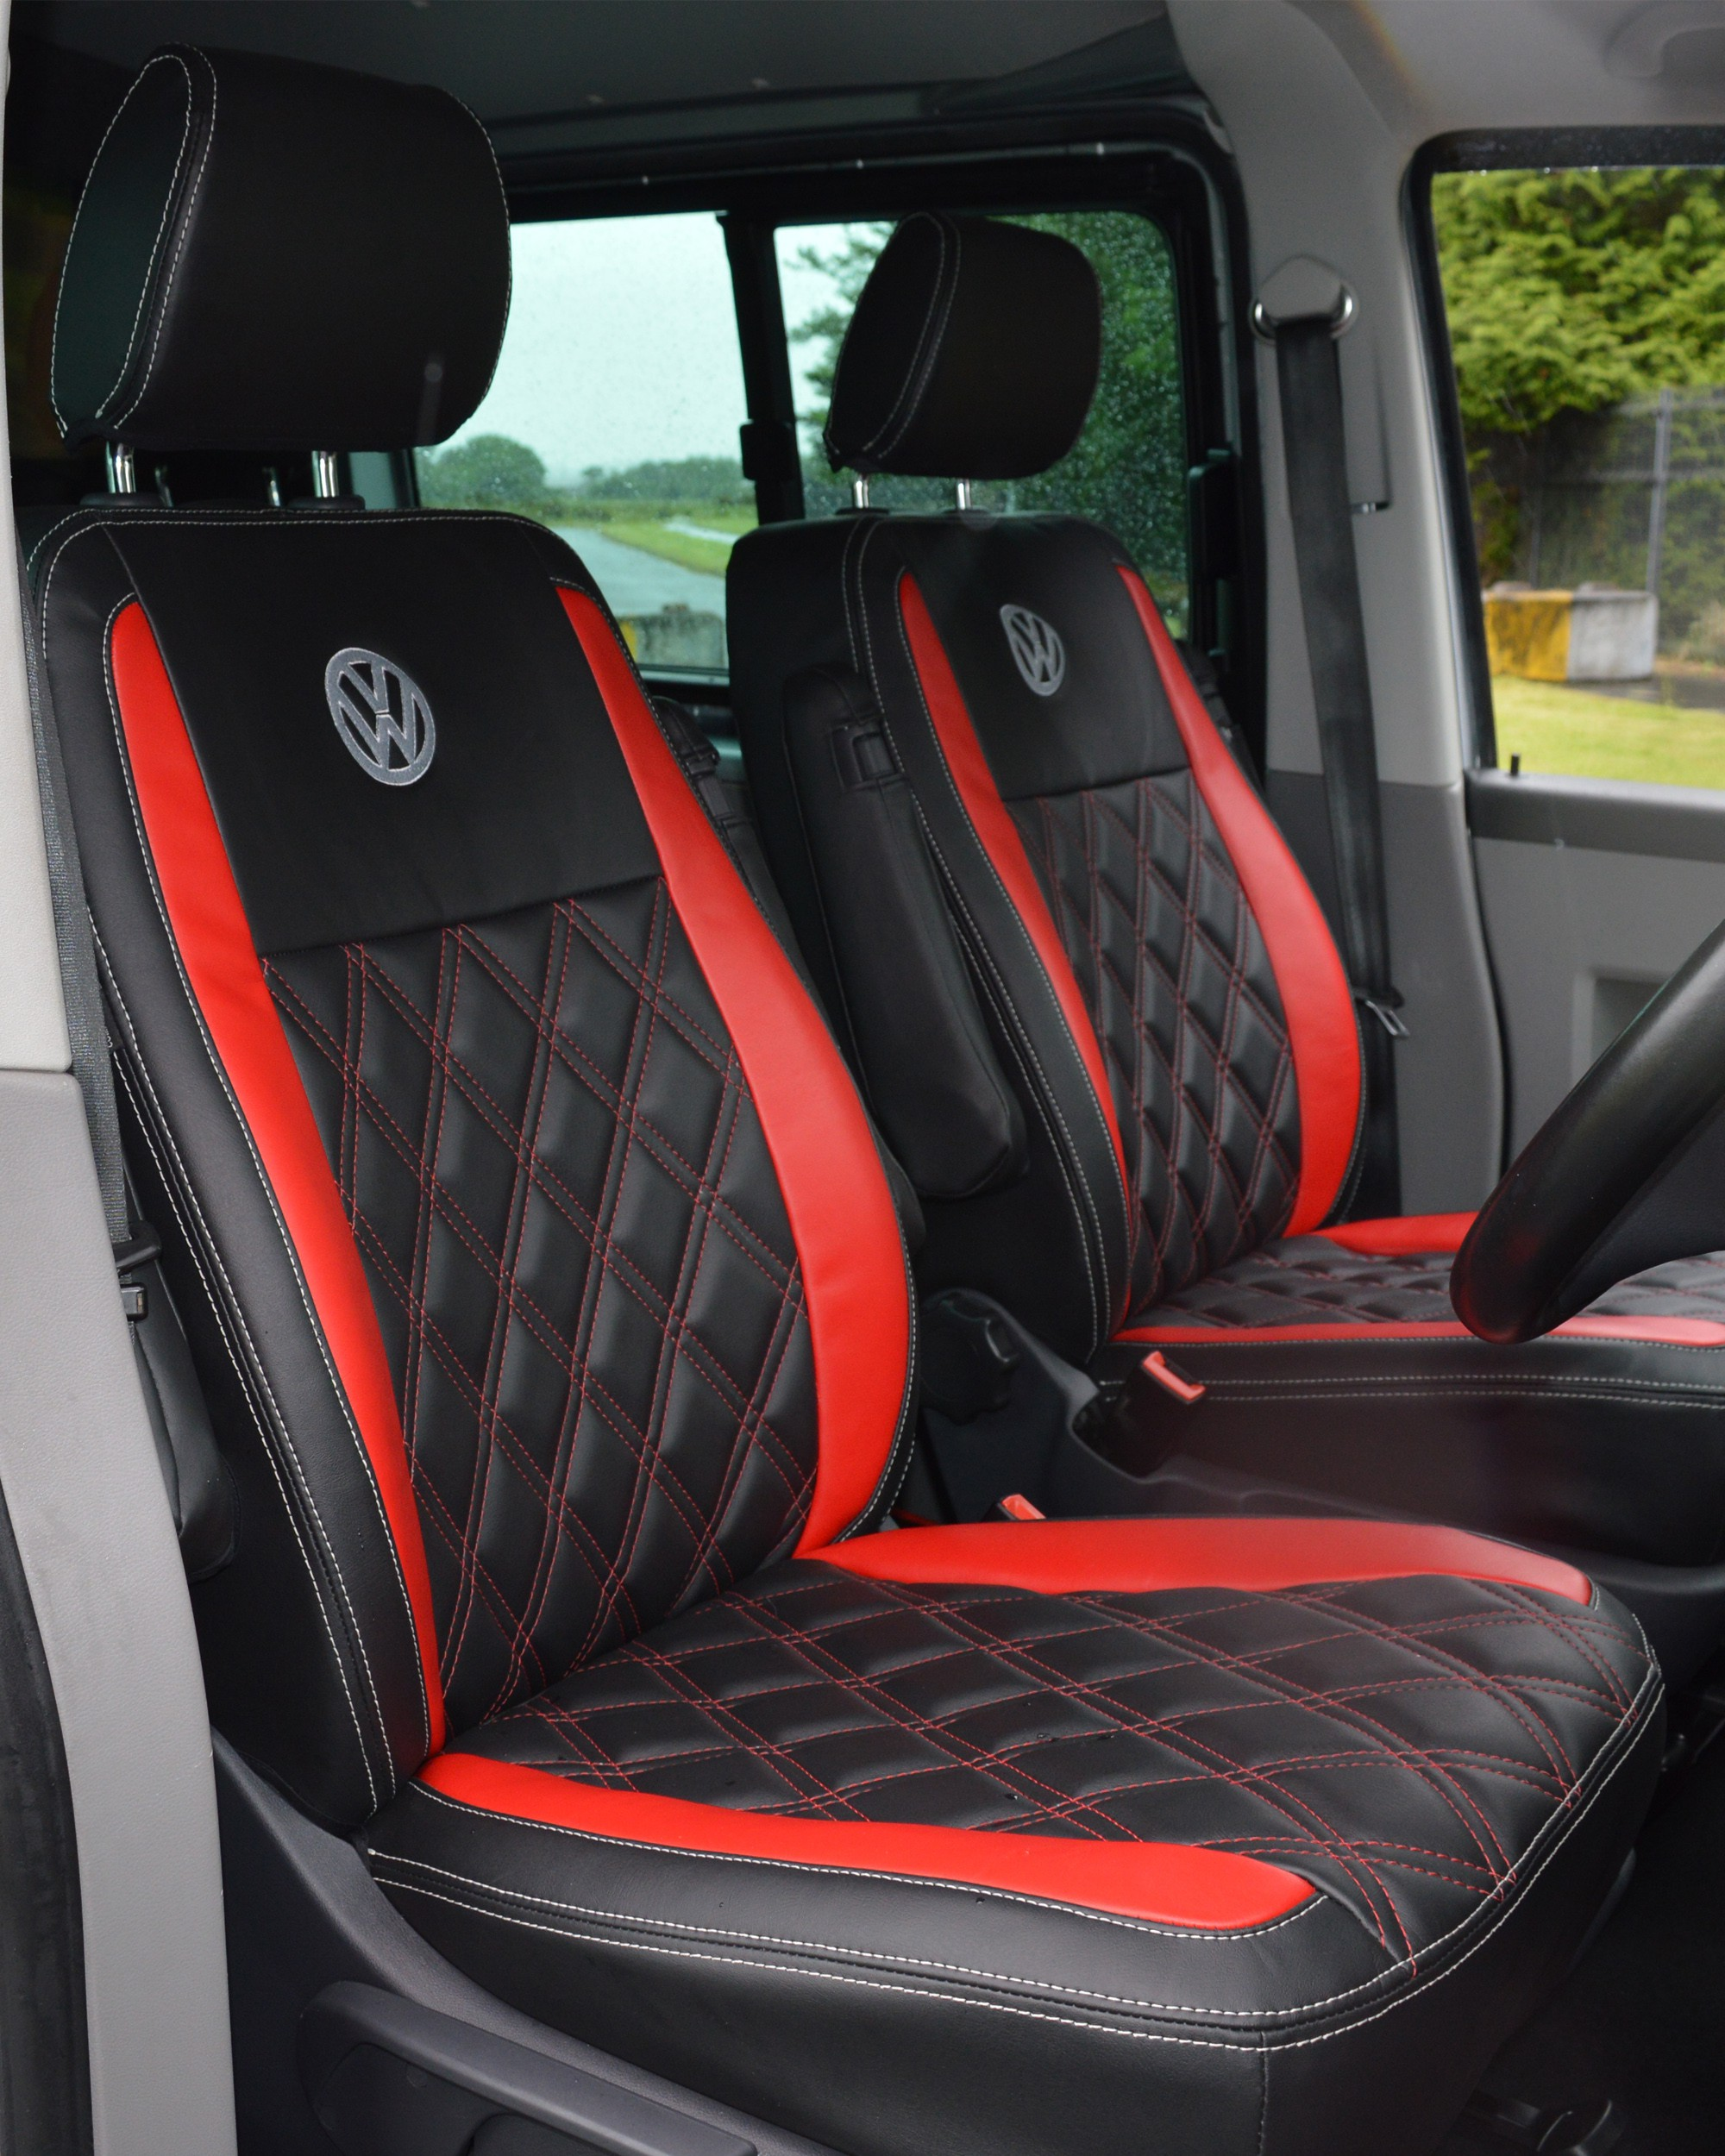 VW Transporter T5 Kombi Captain Seats Covers Red Diamond Quilted